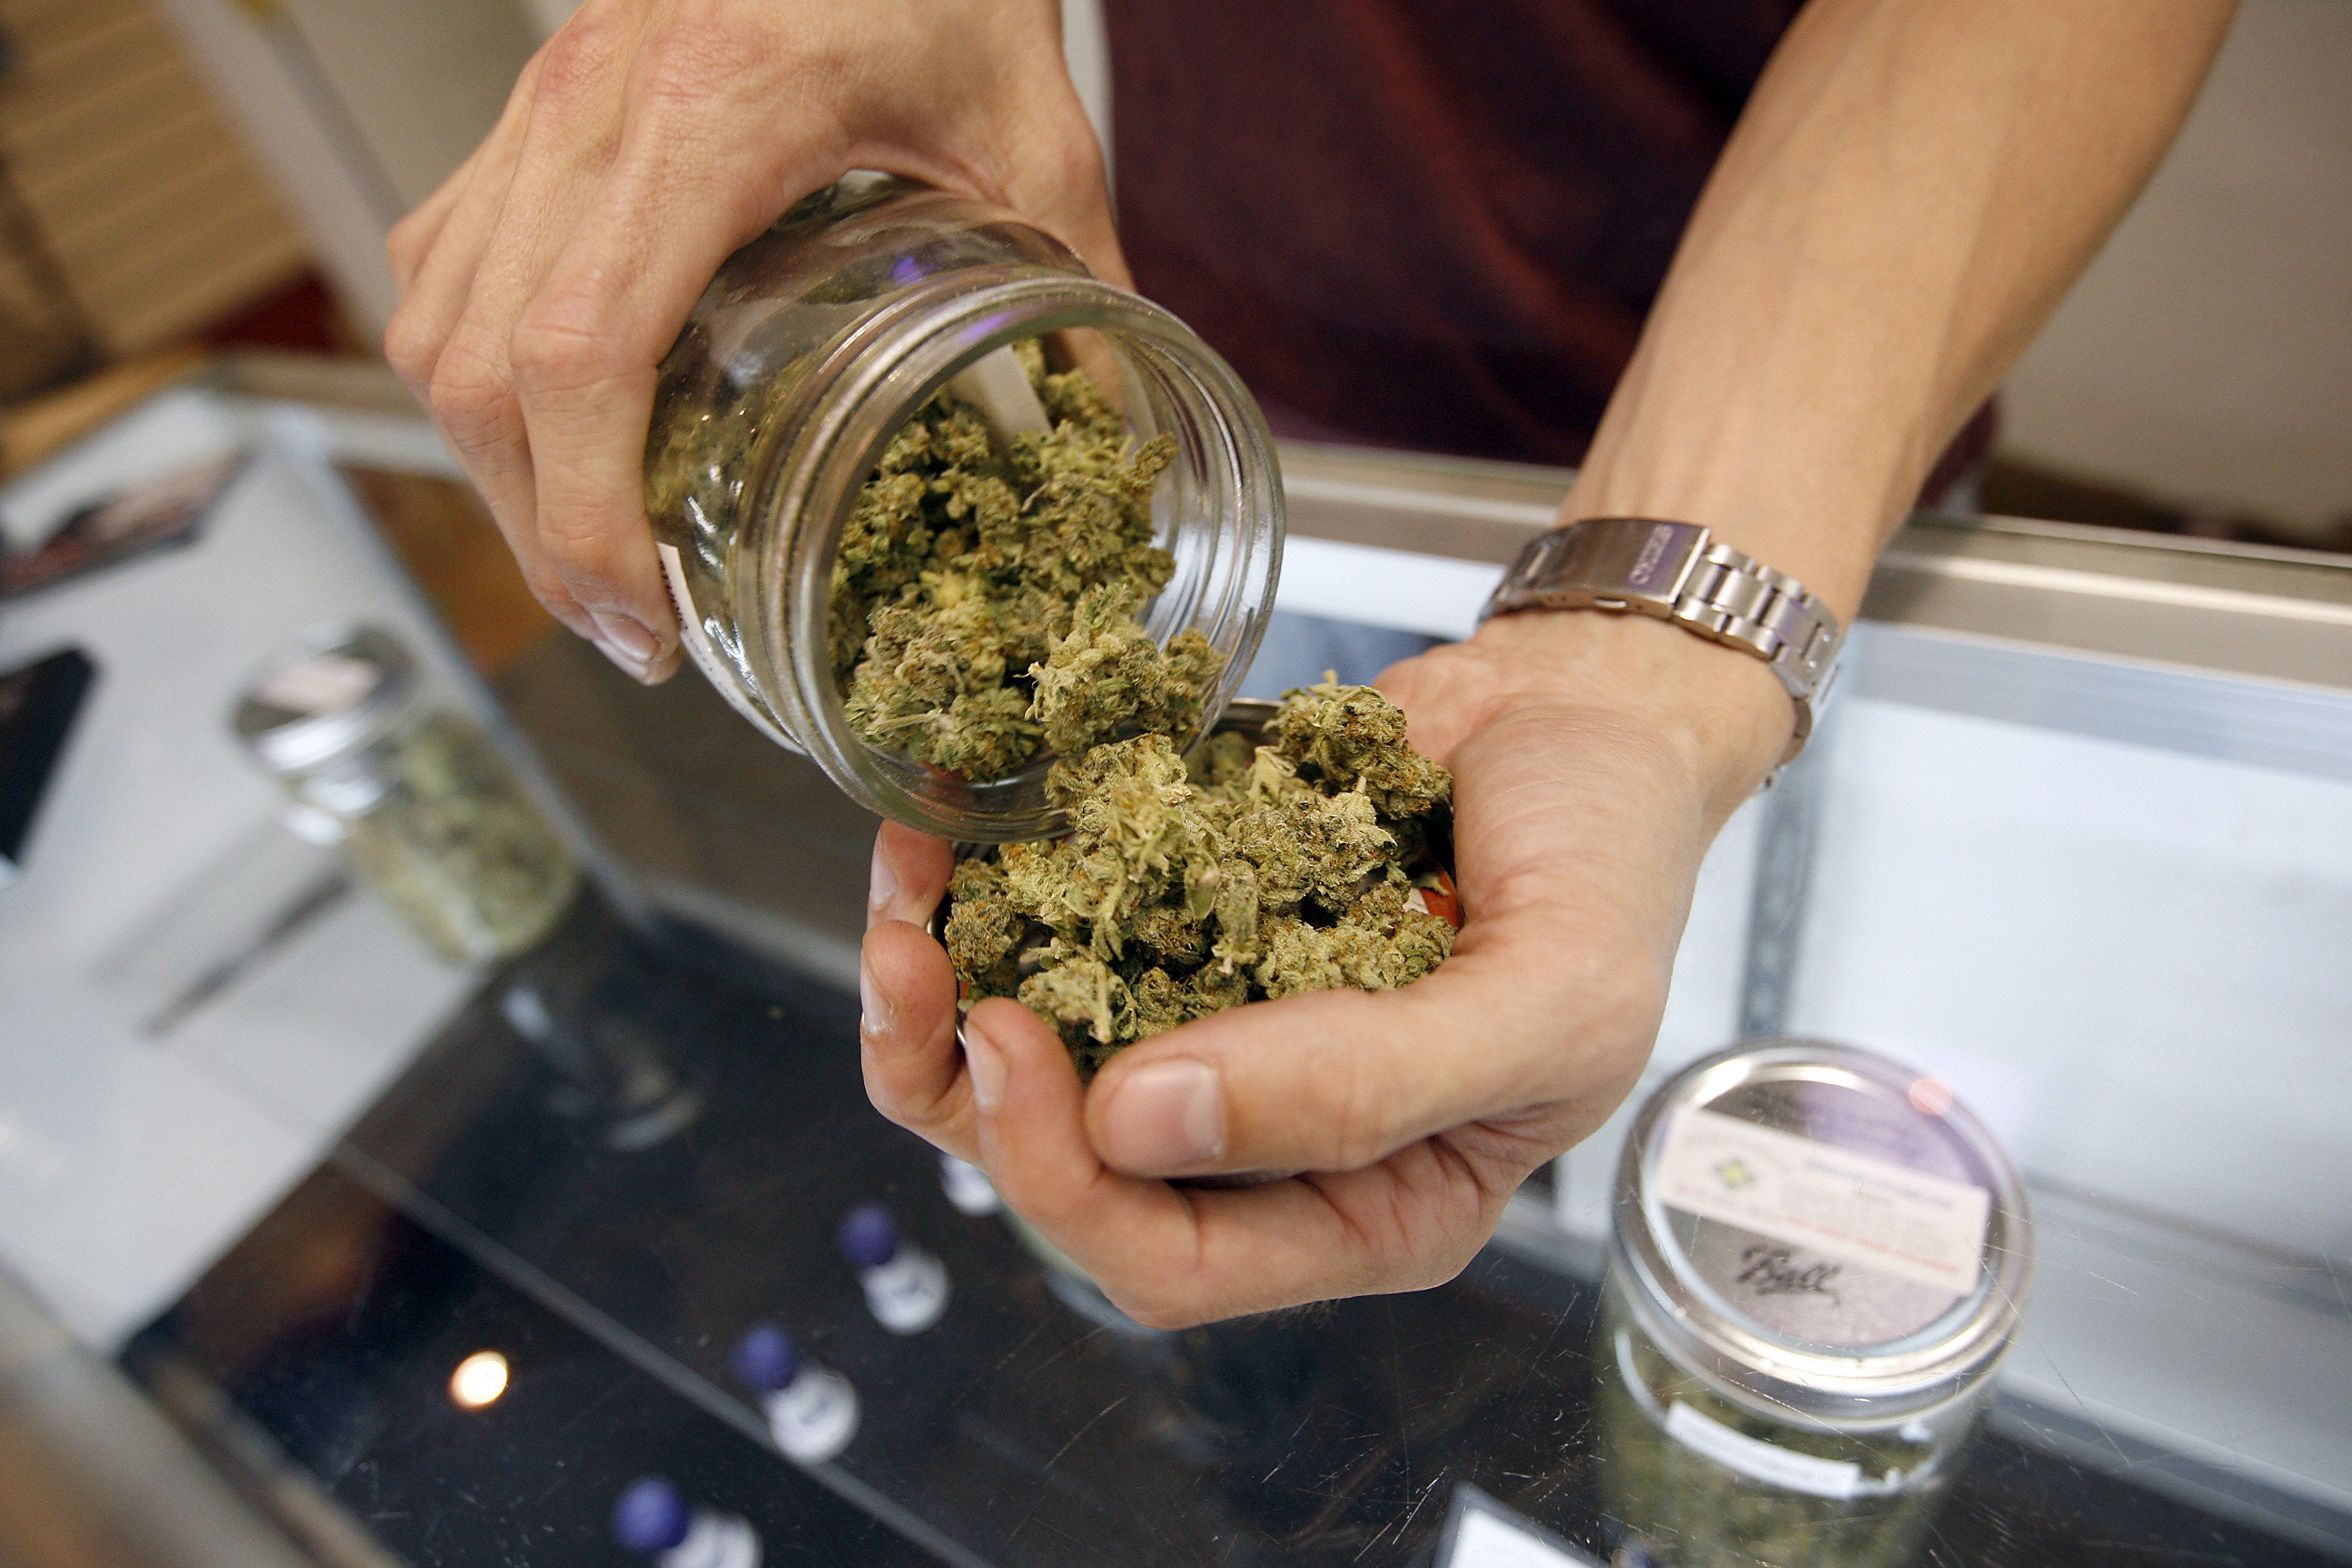 A budtender pours marijuana from a jar at a medical marijuana dispensary. (credit: David McNew/Getty Images)